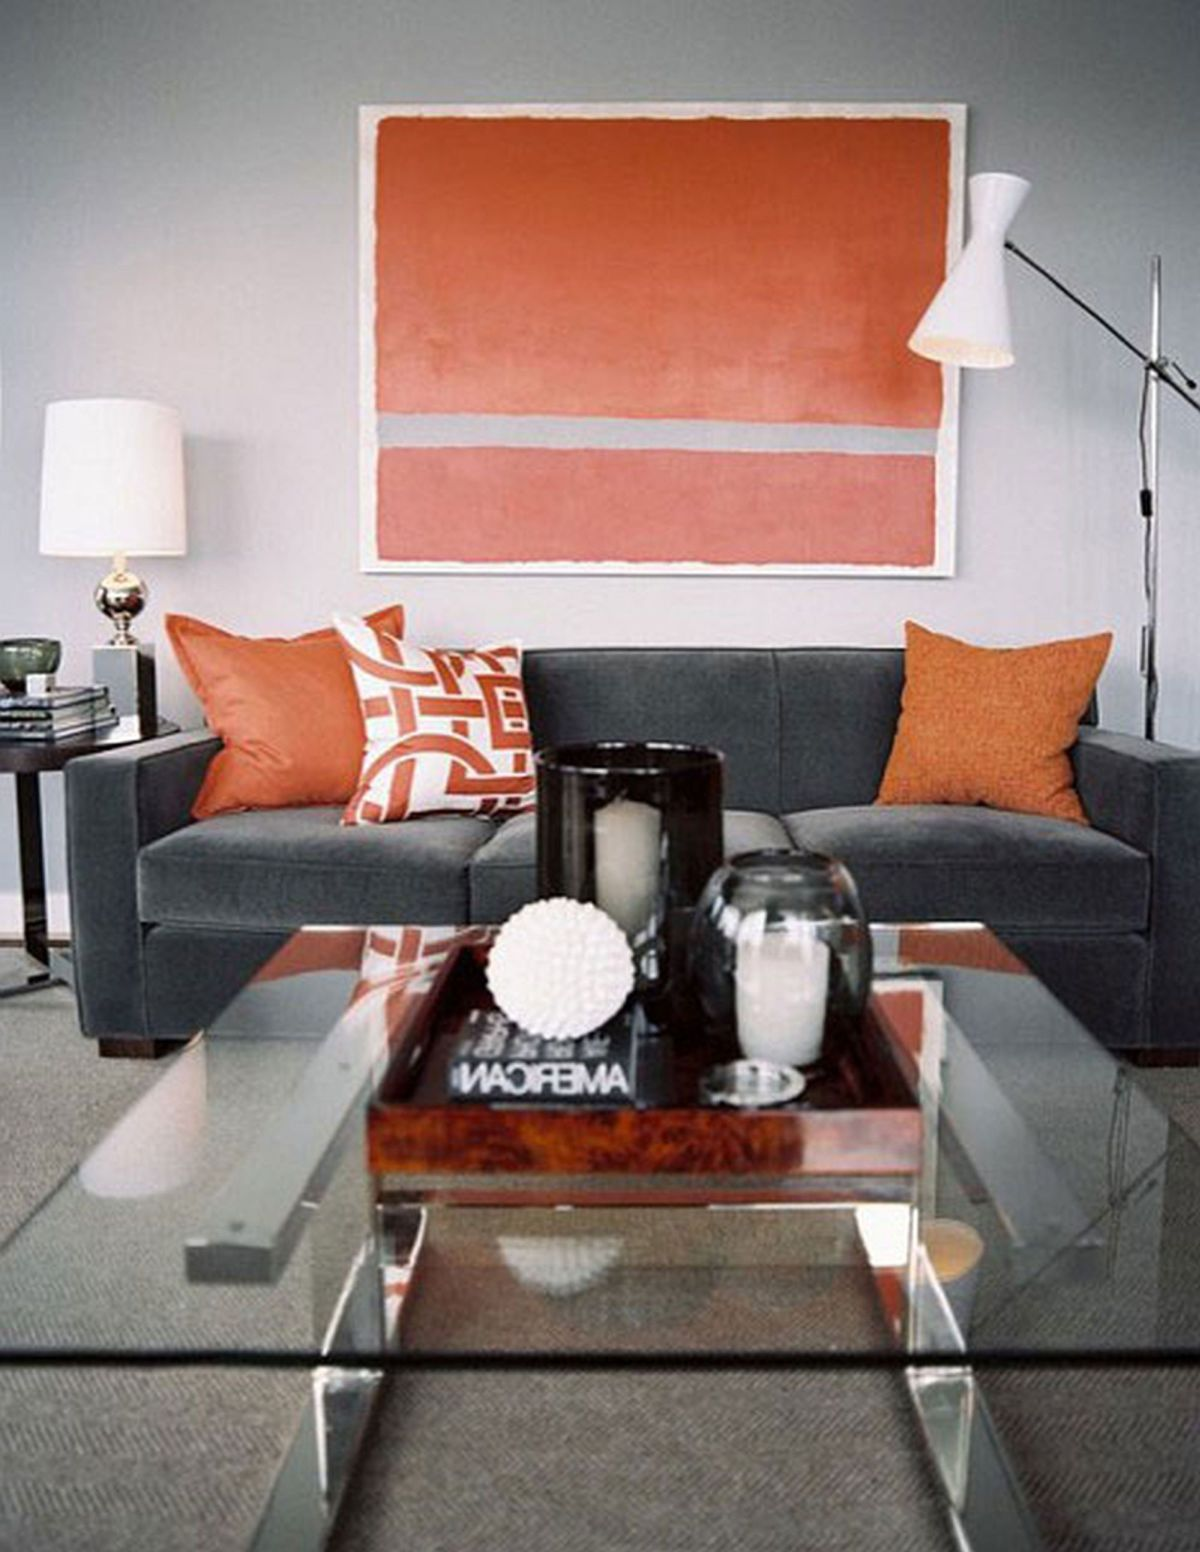 D co d automne comment utiliser l orange dans le salon - Black and orange living room ideas ...